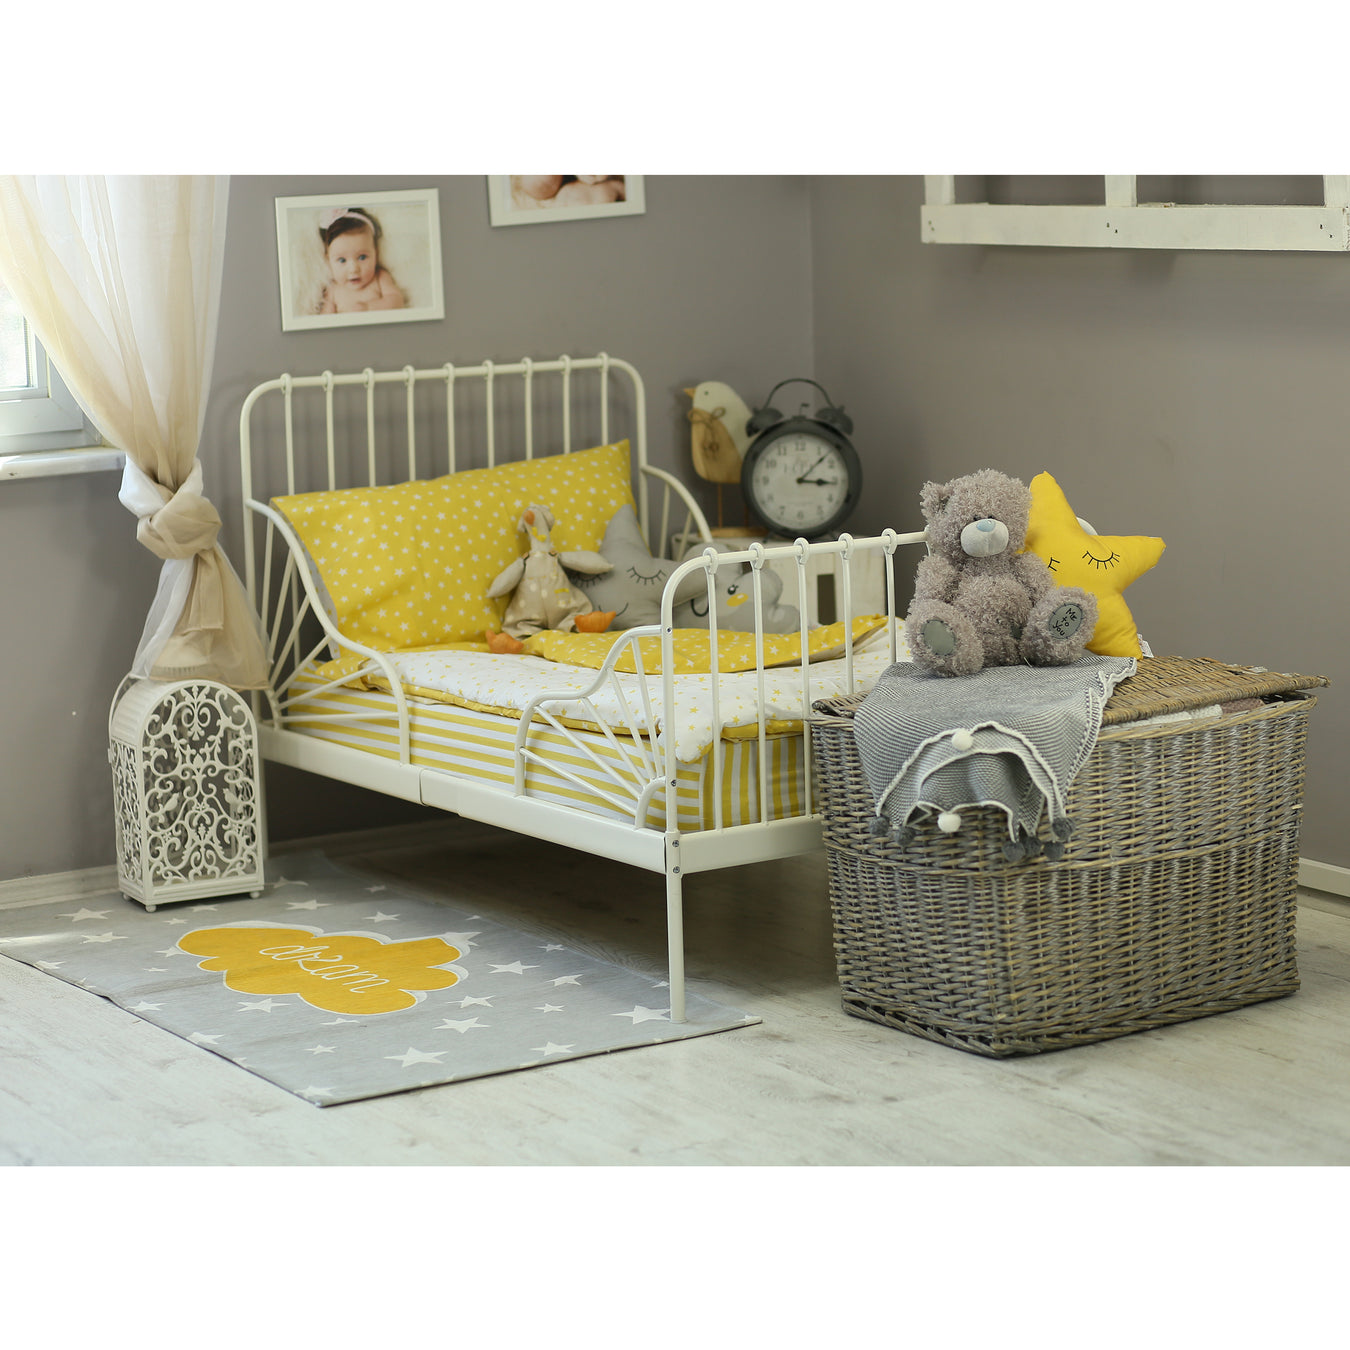 Baby and Toddler Bedding Collection